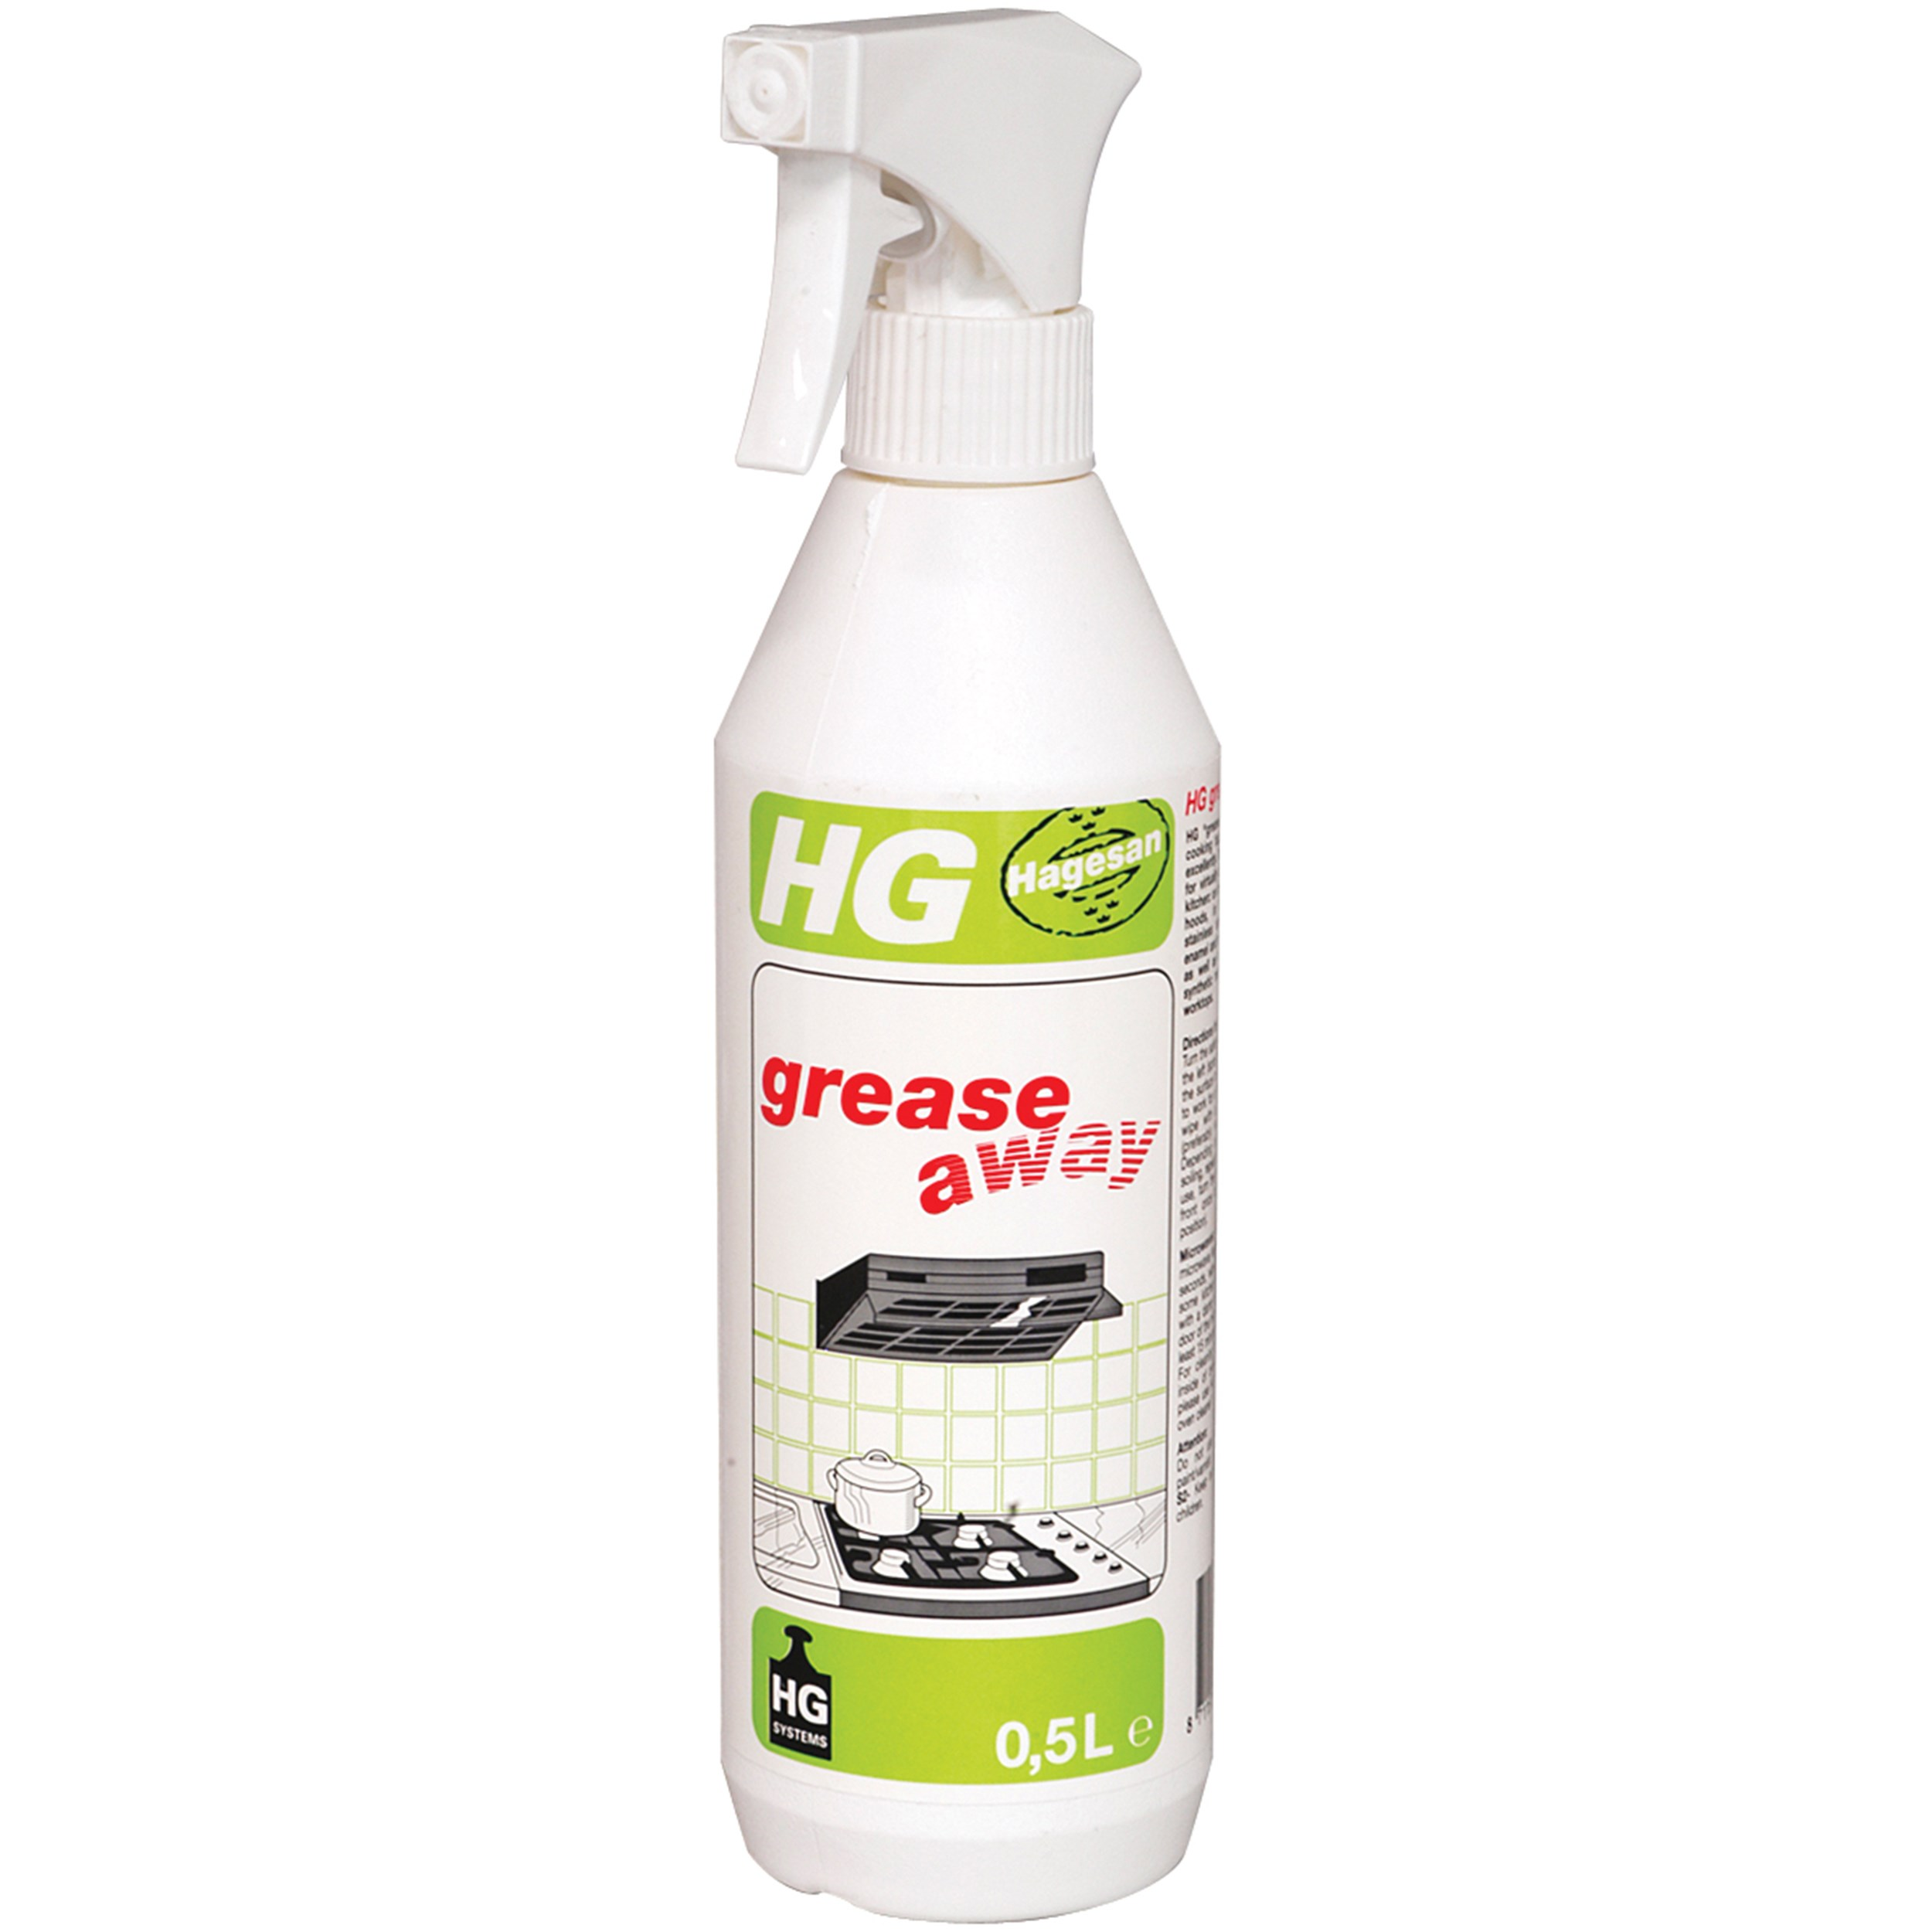 Hg Ceramic Hob Cleaner 500ml: HG Grease Away Cleaning Spray - 500ml